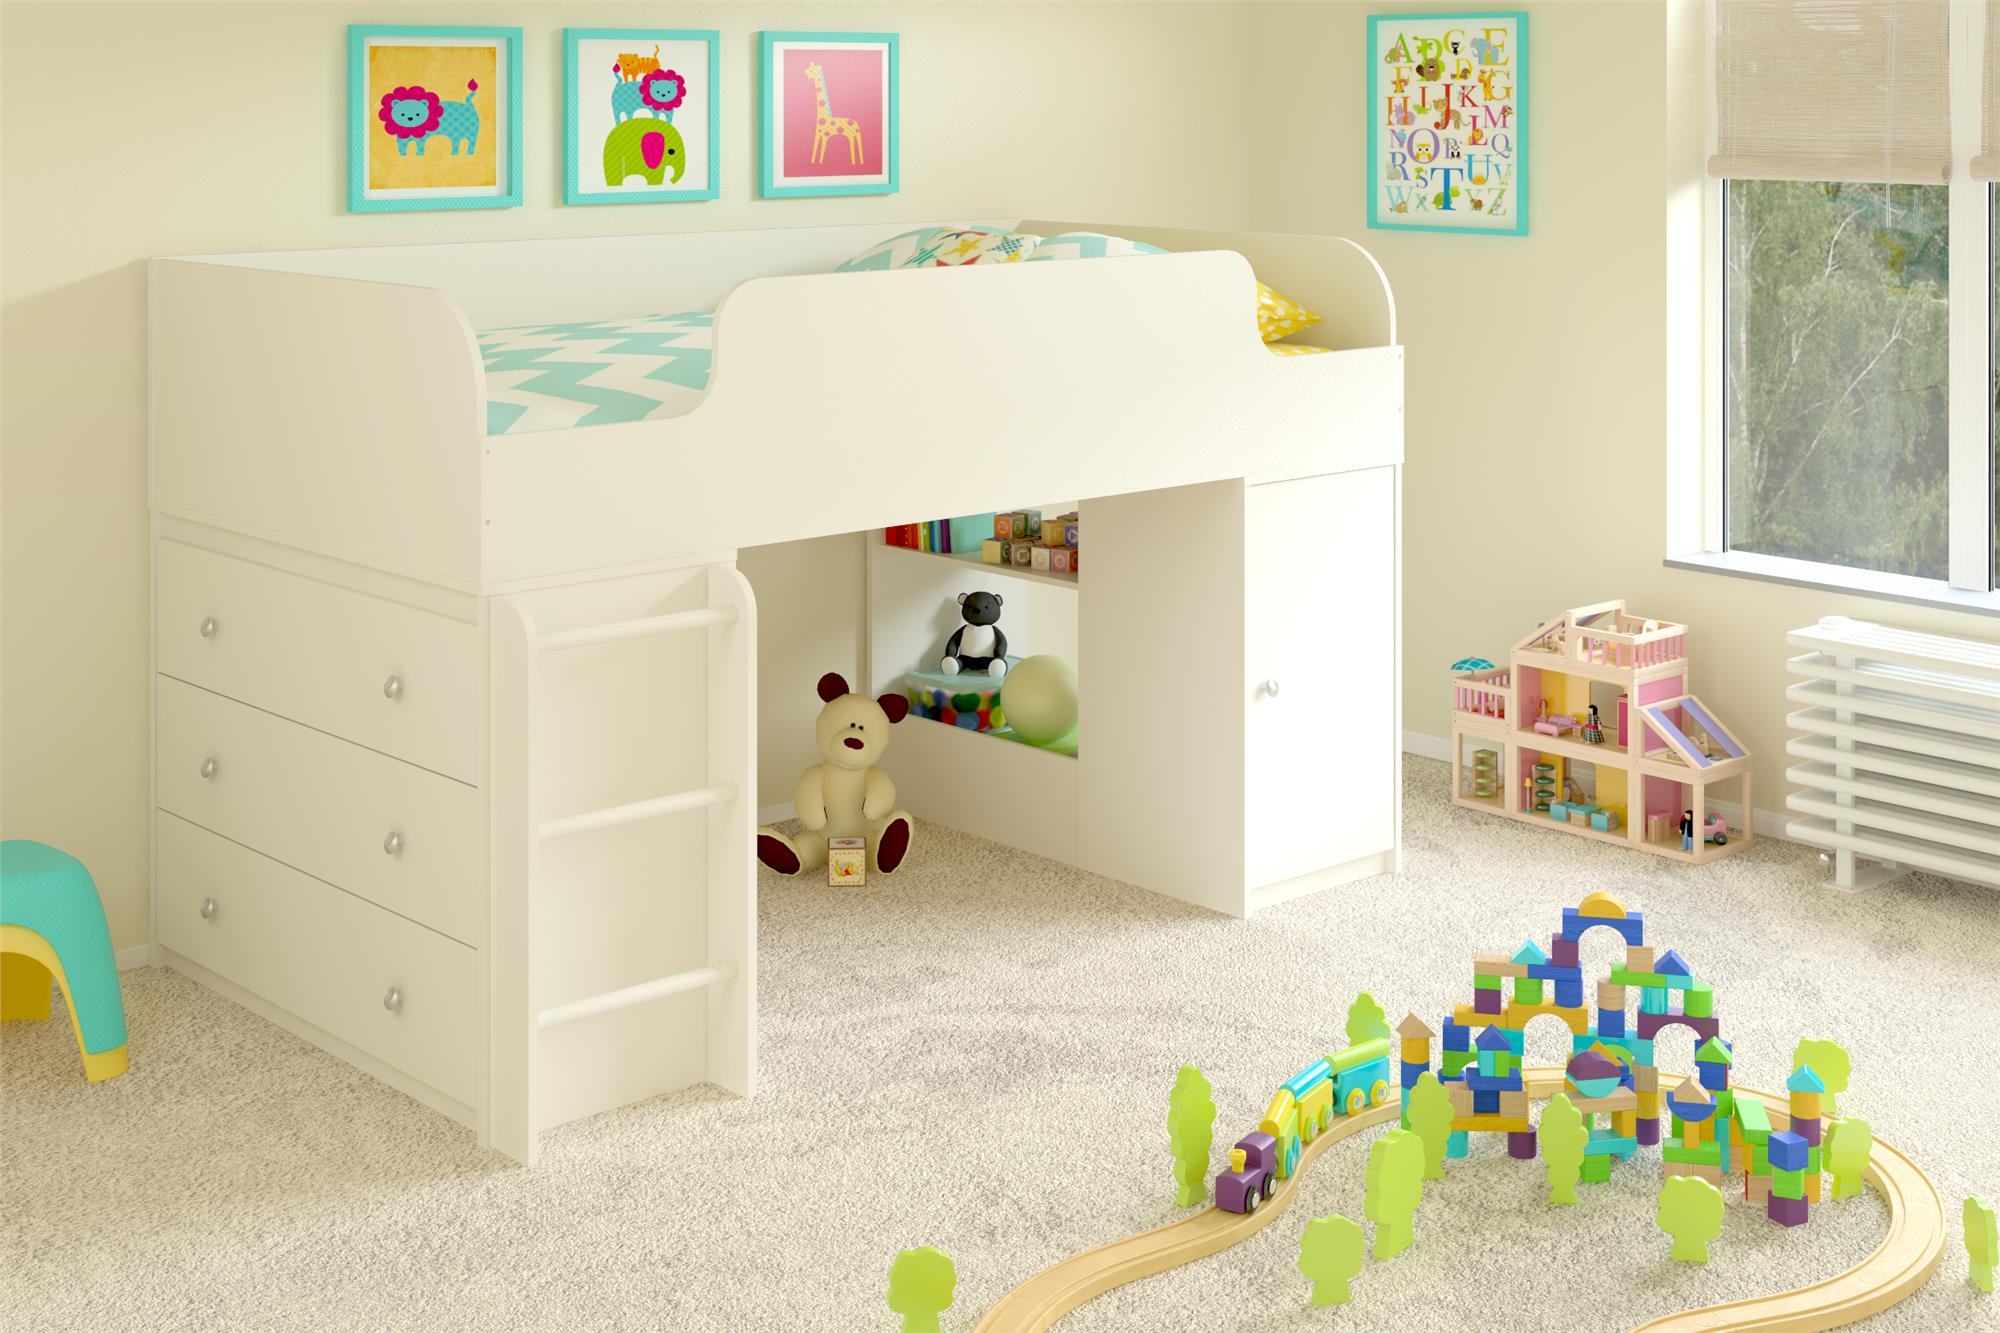 Dorel Home Furnishings Elements White Stipple Loft Bed with 3-Drawer Dresser and Toy Box Bookcase